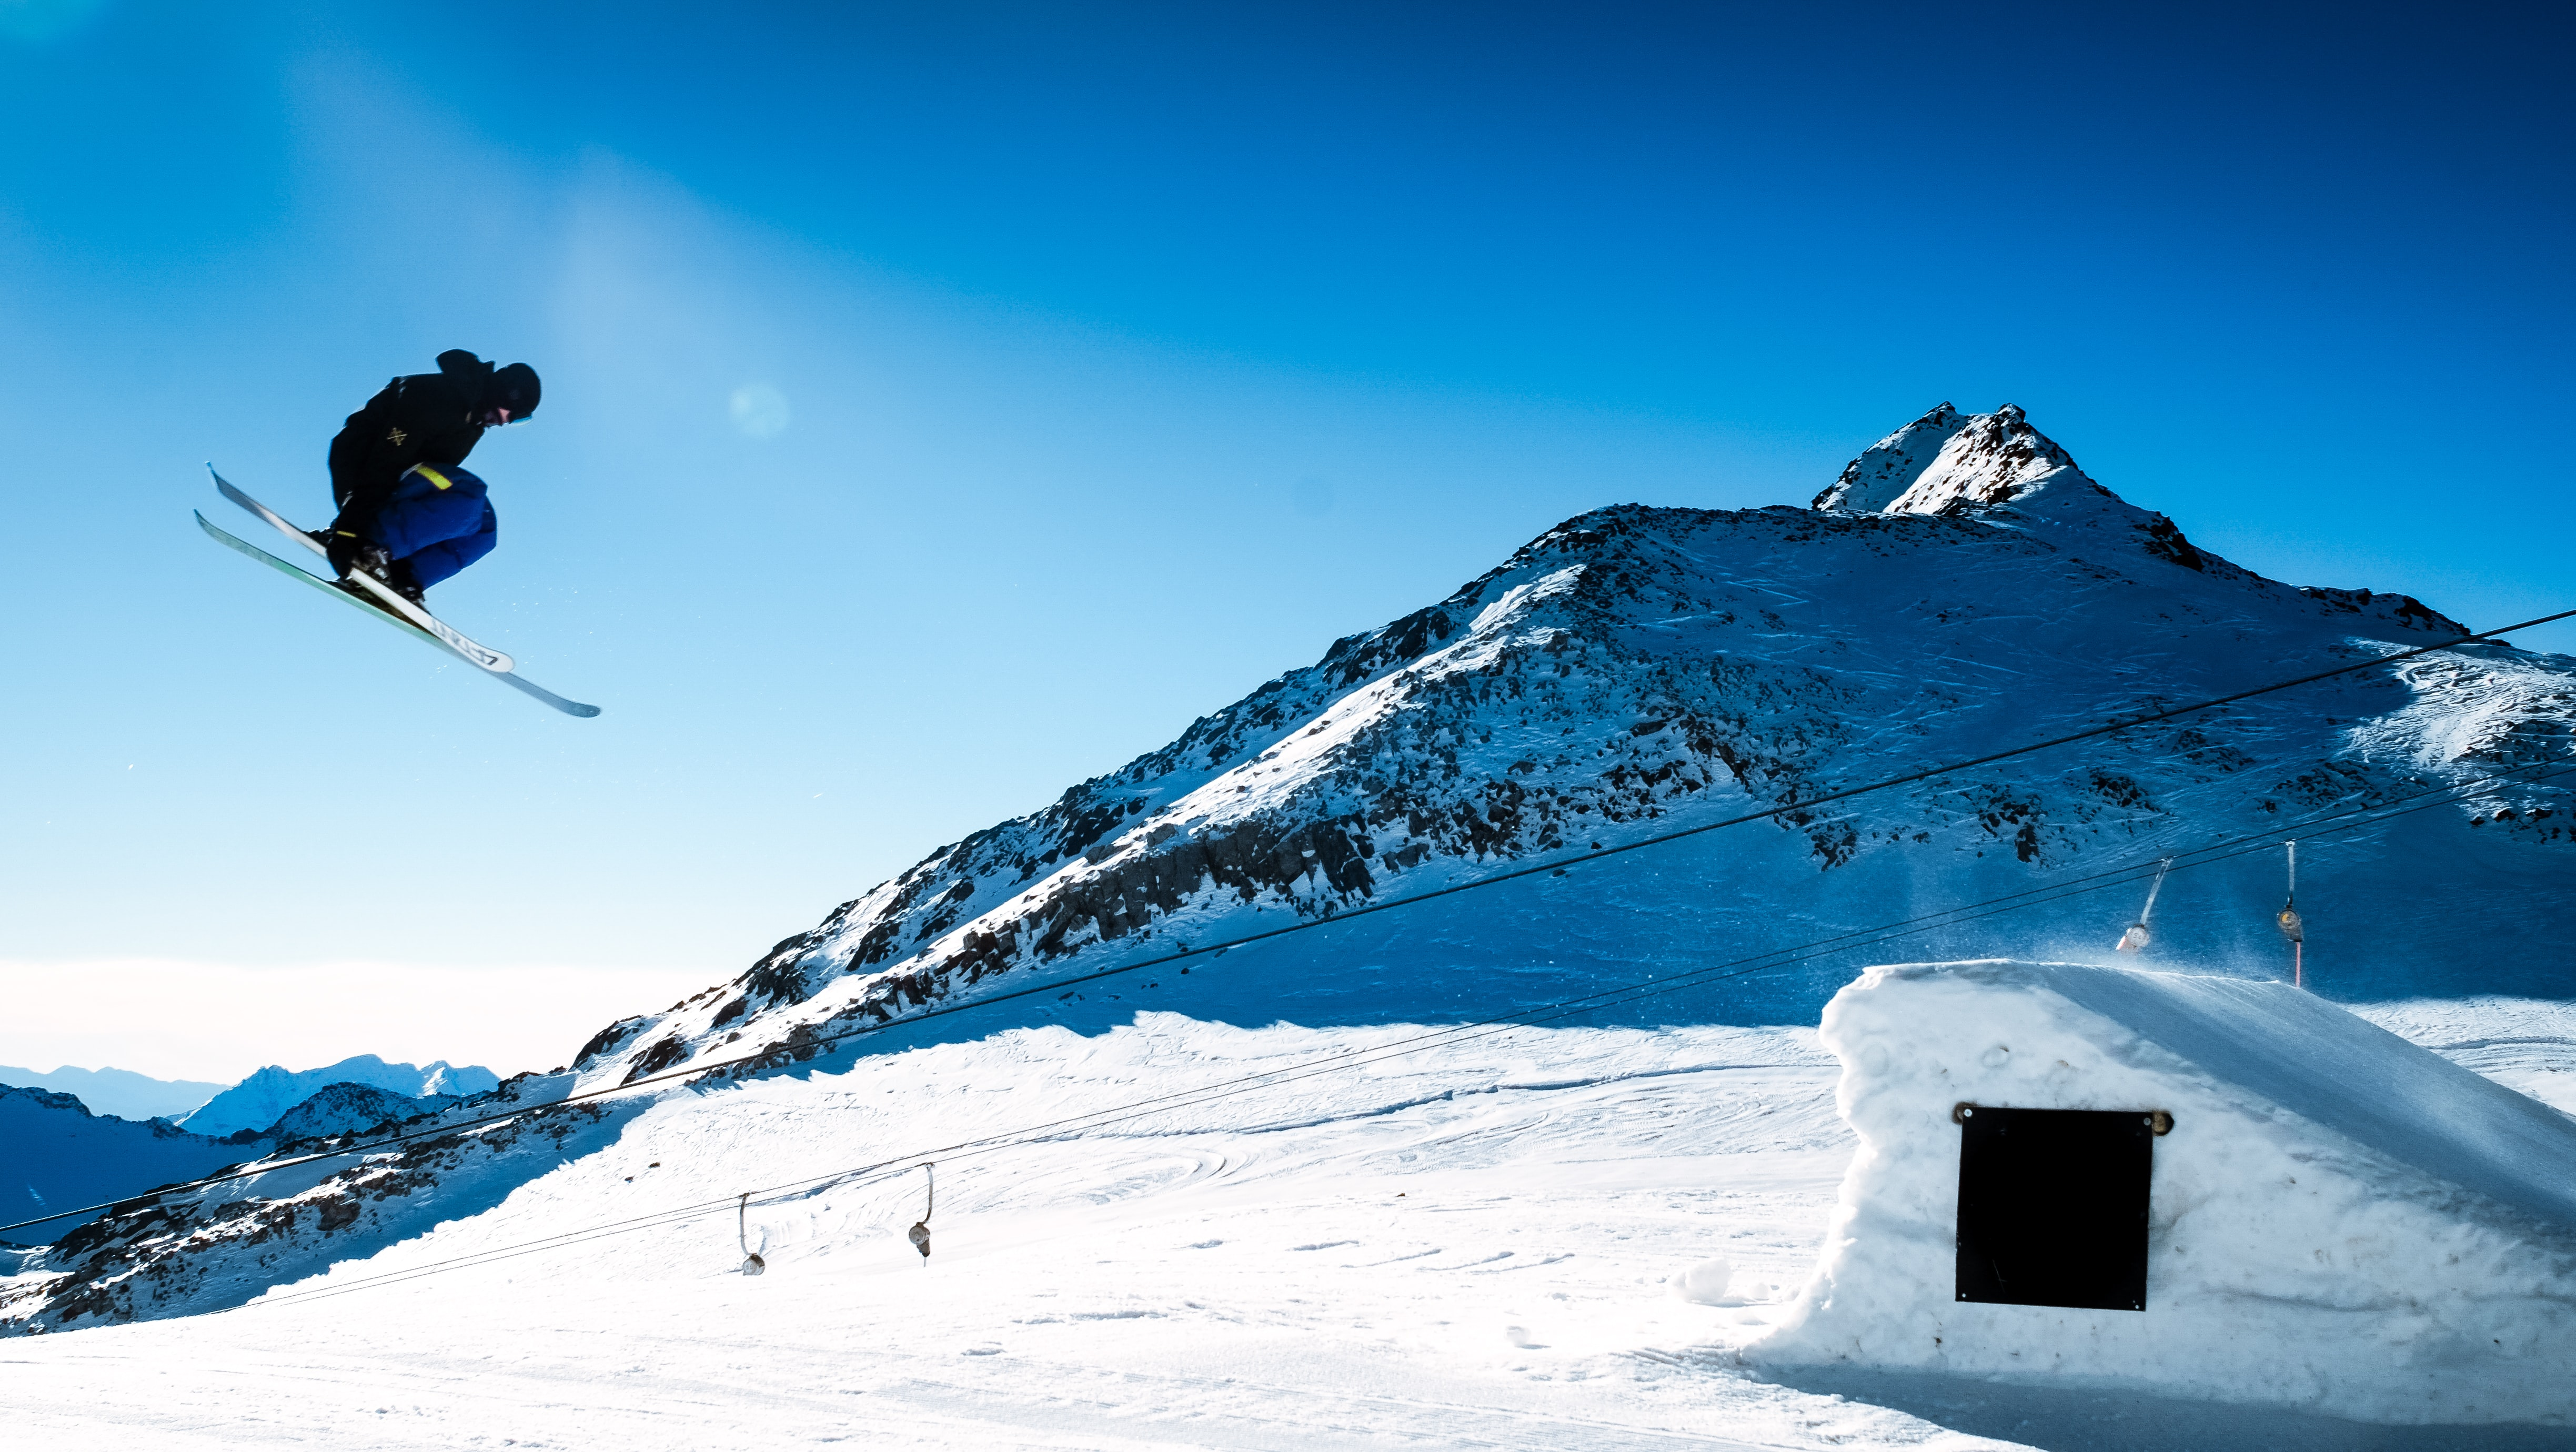 Skiing, Things to do in Austria in Winter